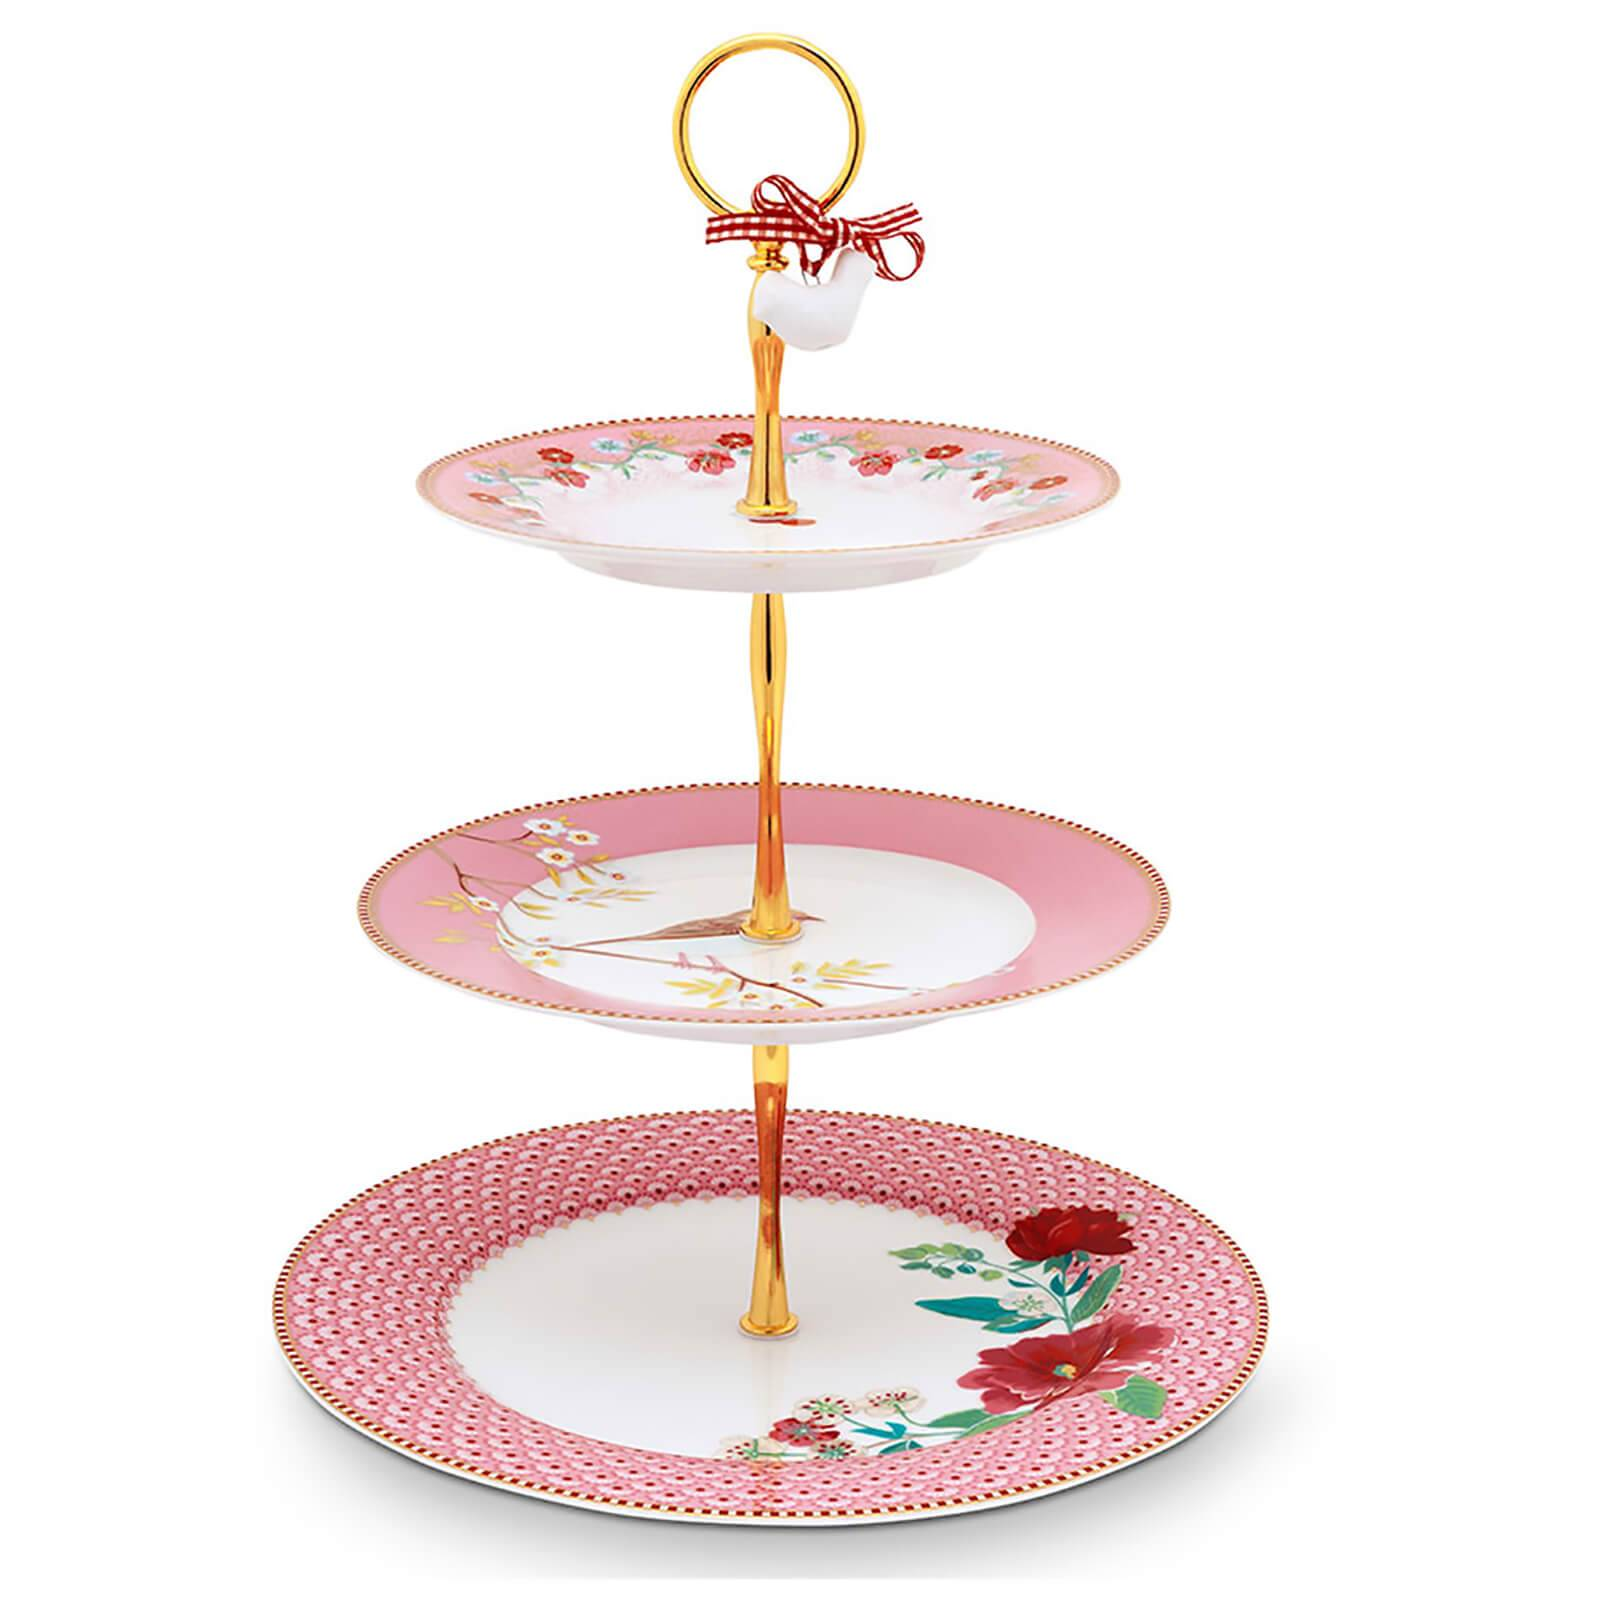 Pip Studio 3 Tier Floral Cake Stand - Pink